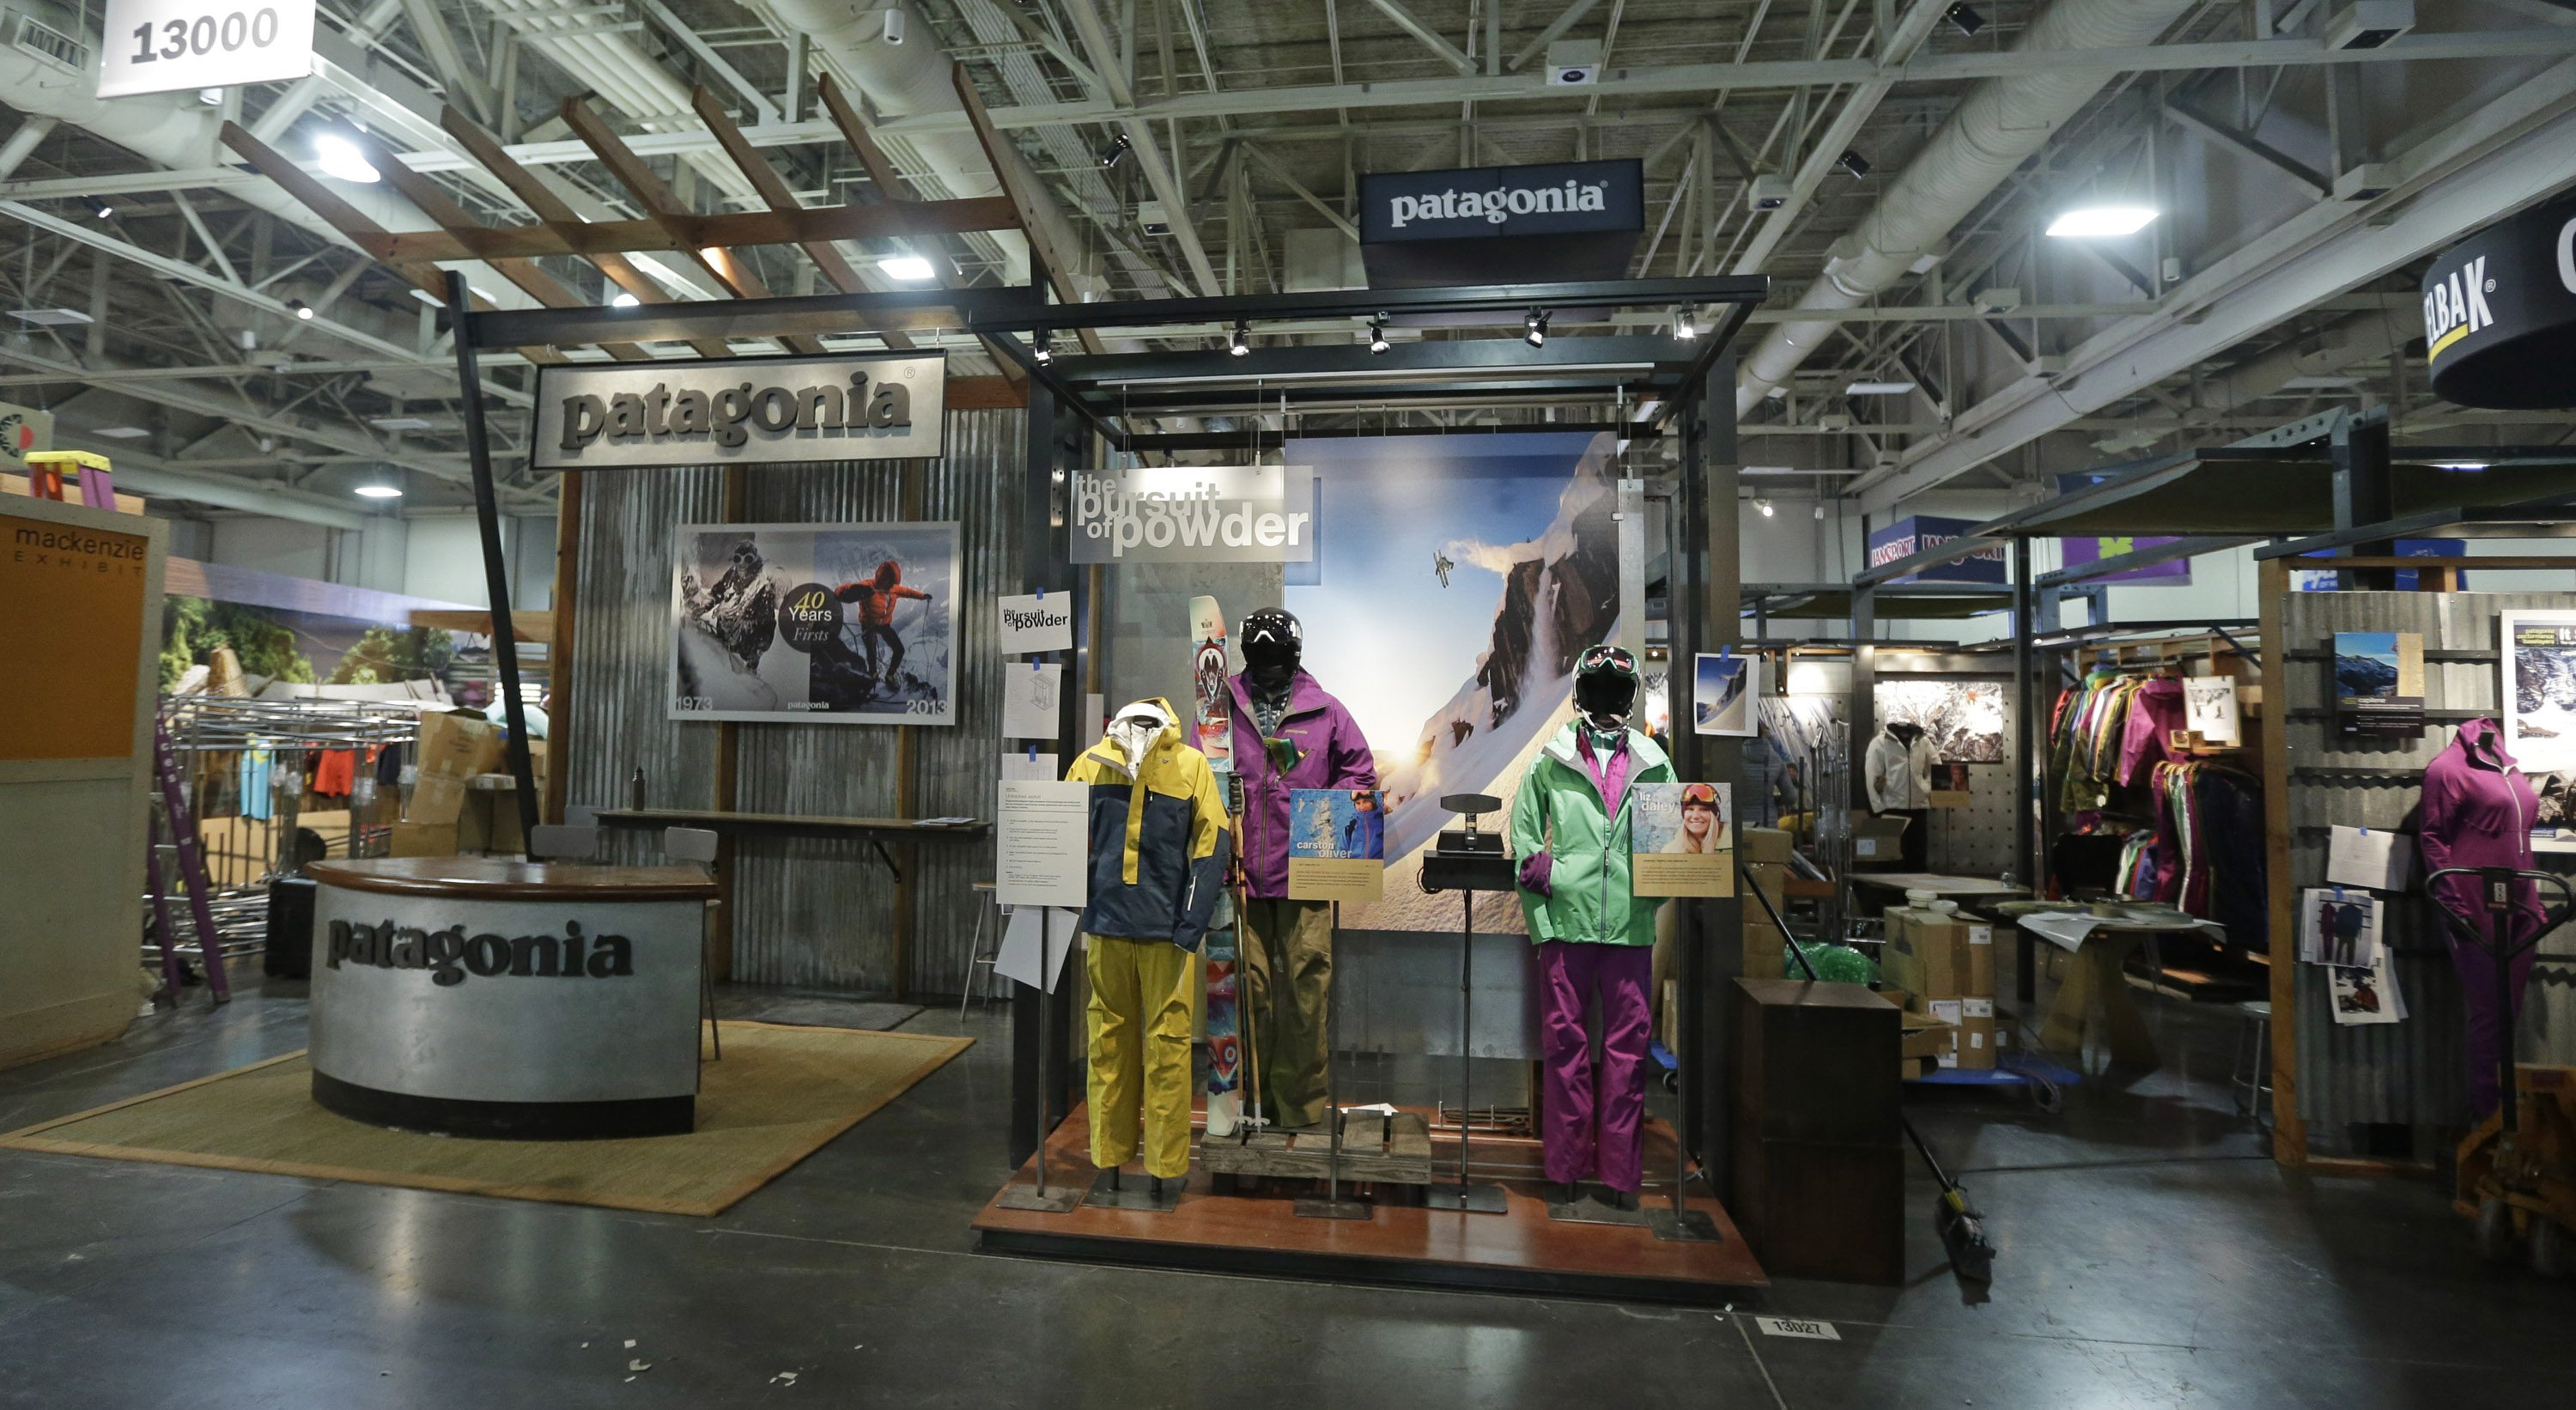 The Patagonia display at the Outdoor Retailer show in Salt Lake City.